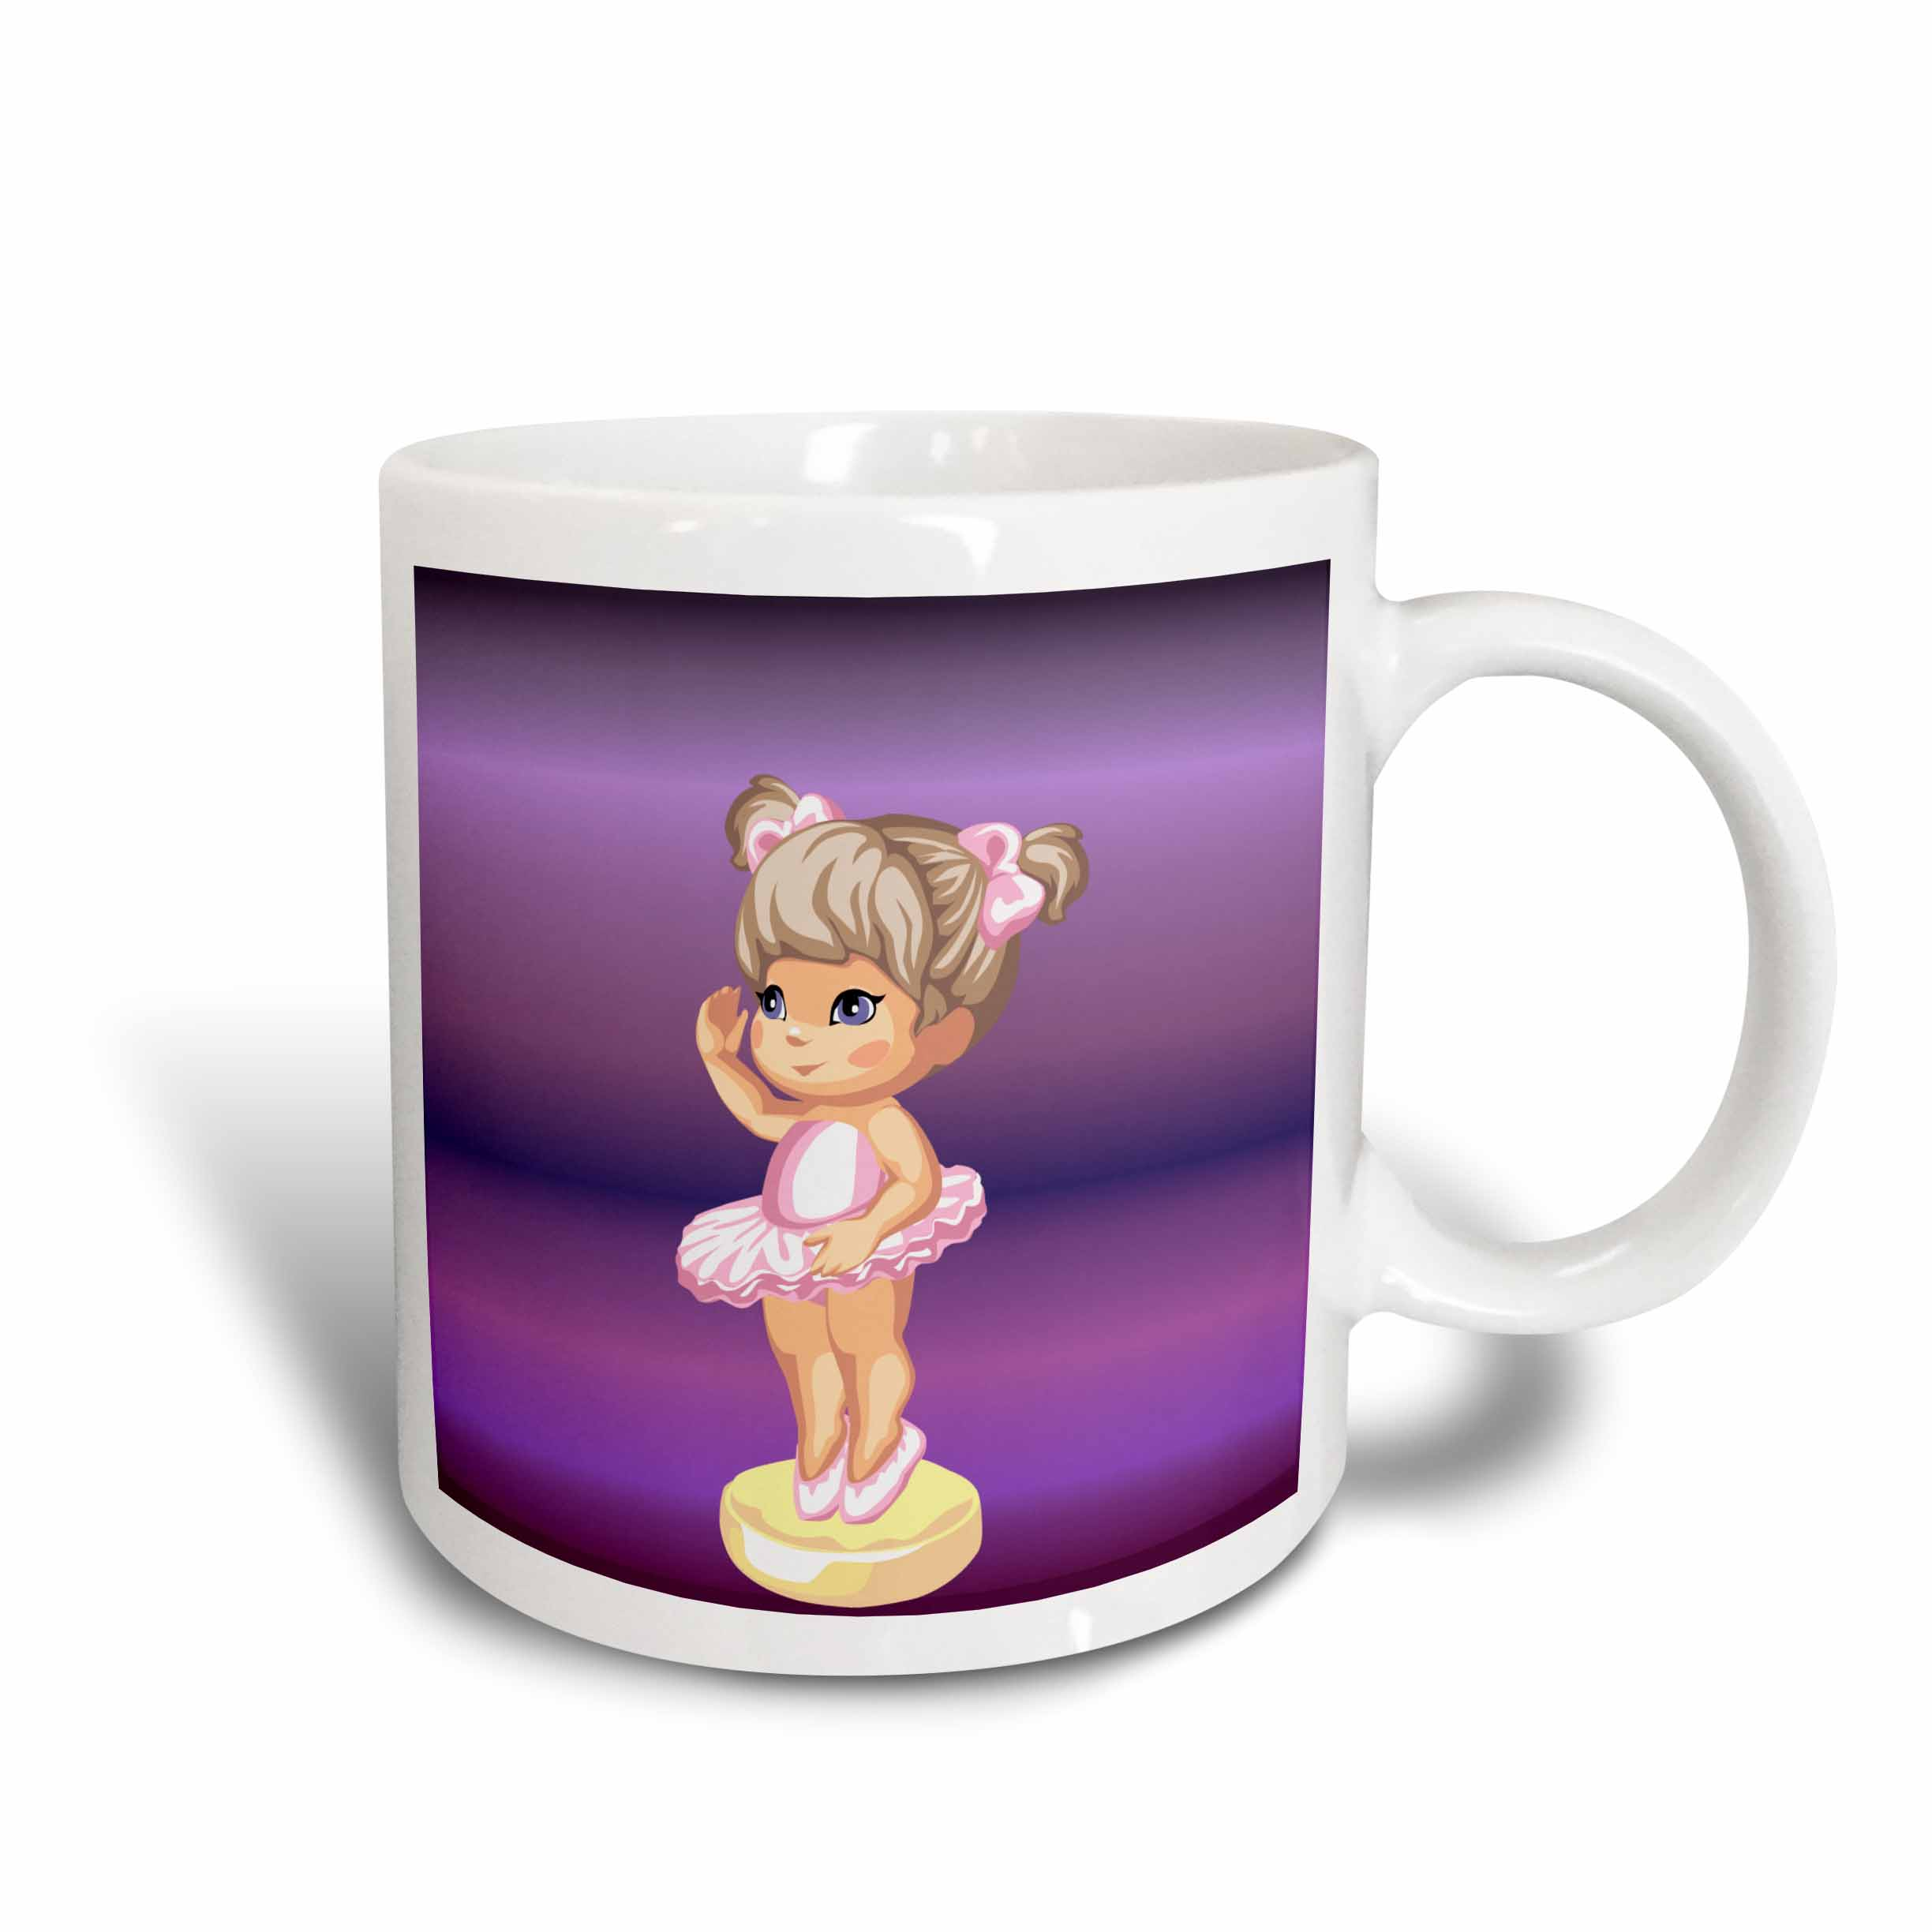 3dRose Little Ballerina on Purple Background, Ceramic Mug, 11-ounce